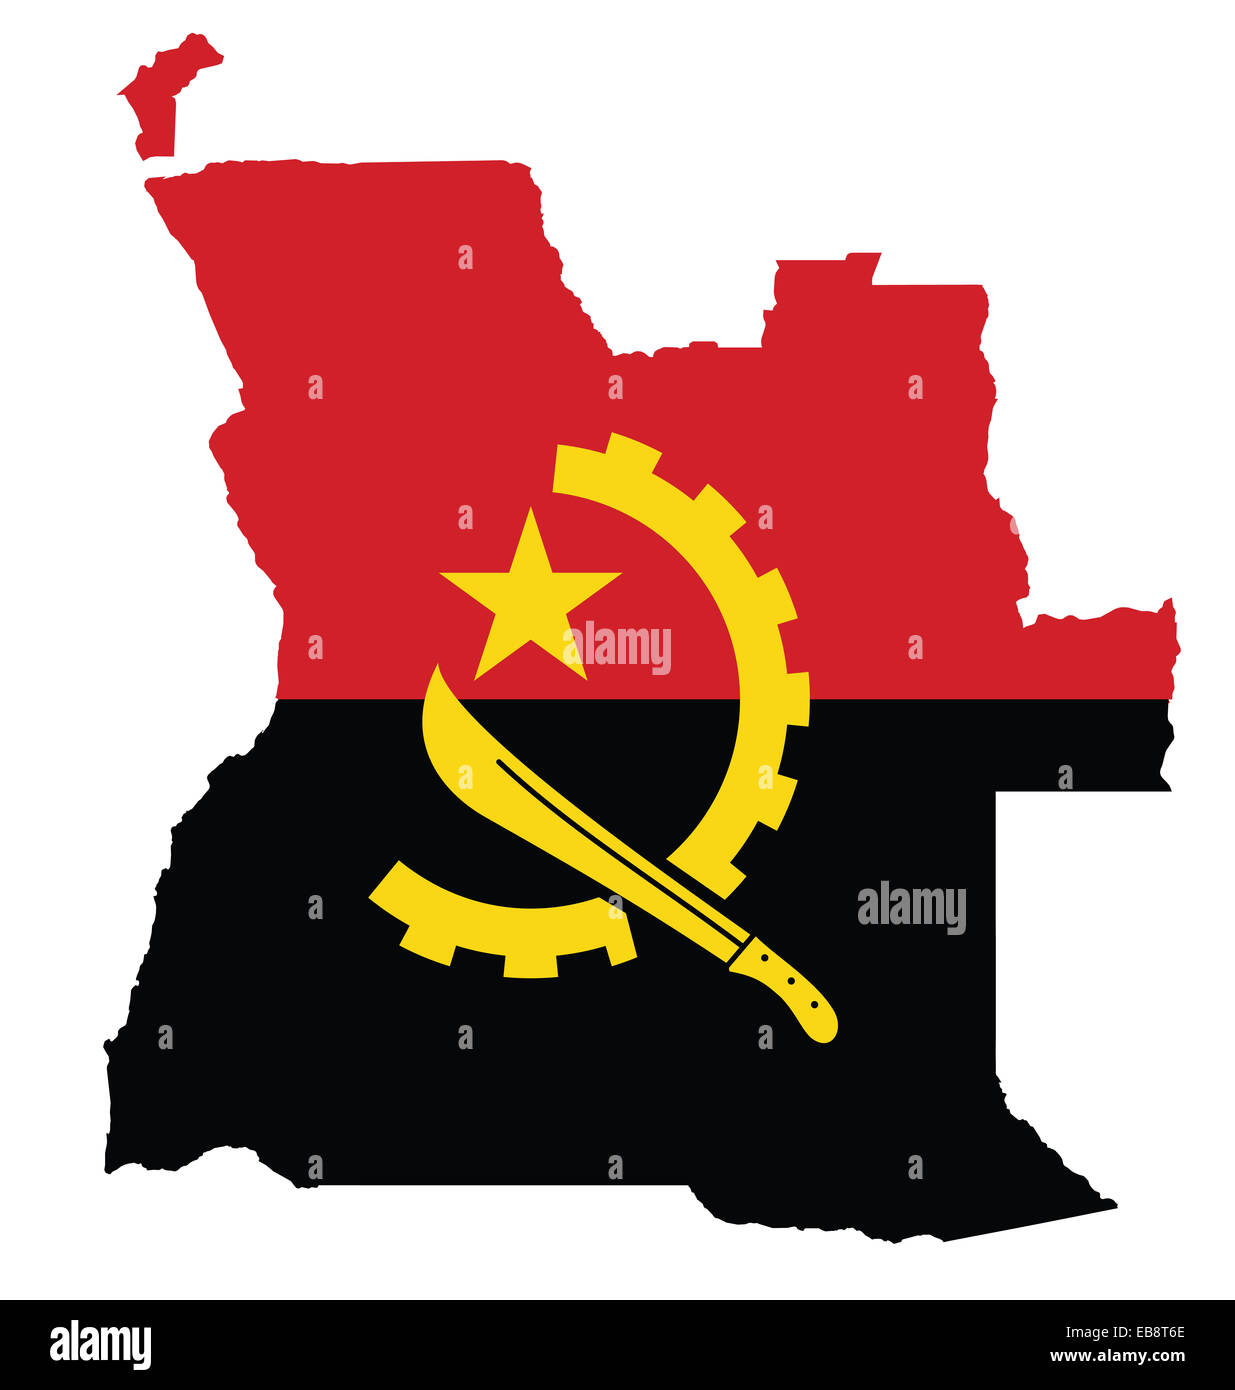 Flag of the Republic of Angola overlaid on outline map - Stock Image